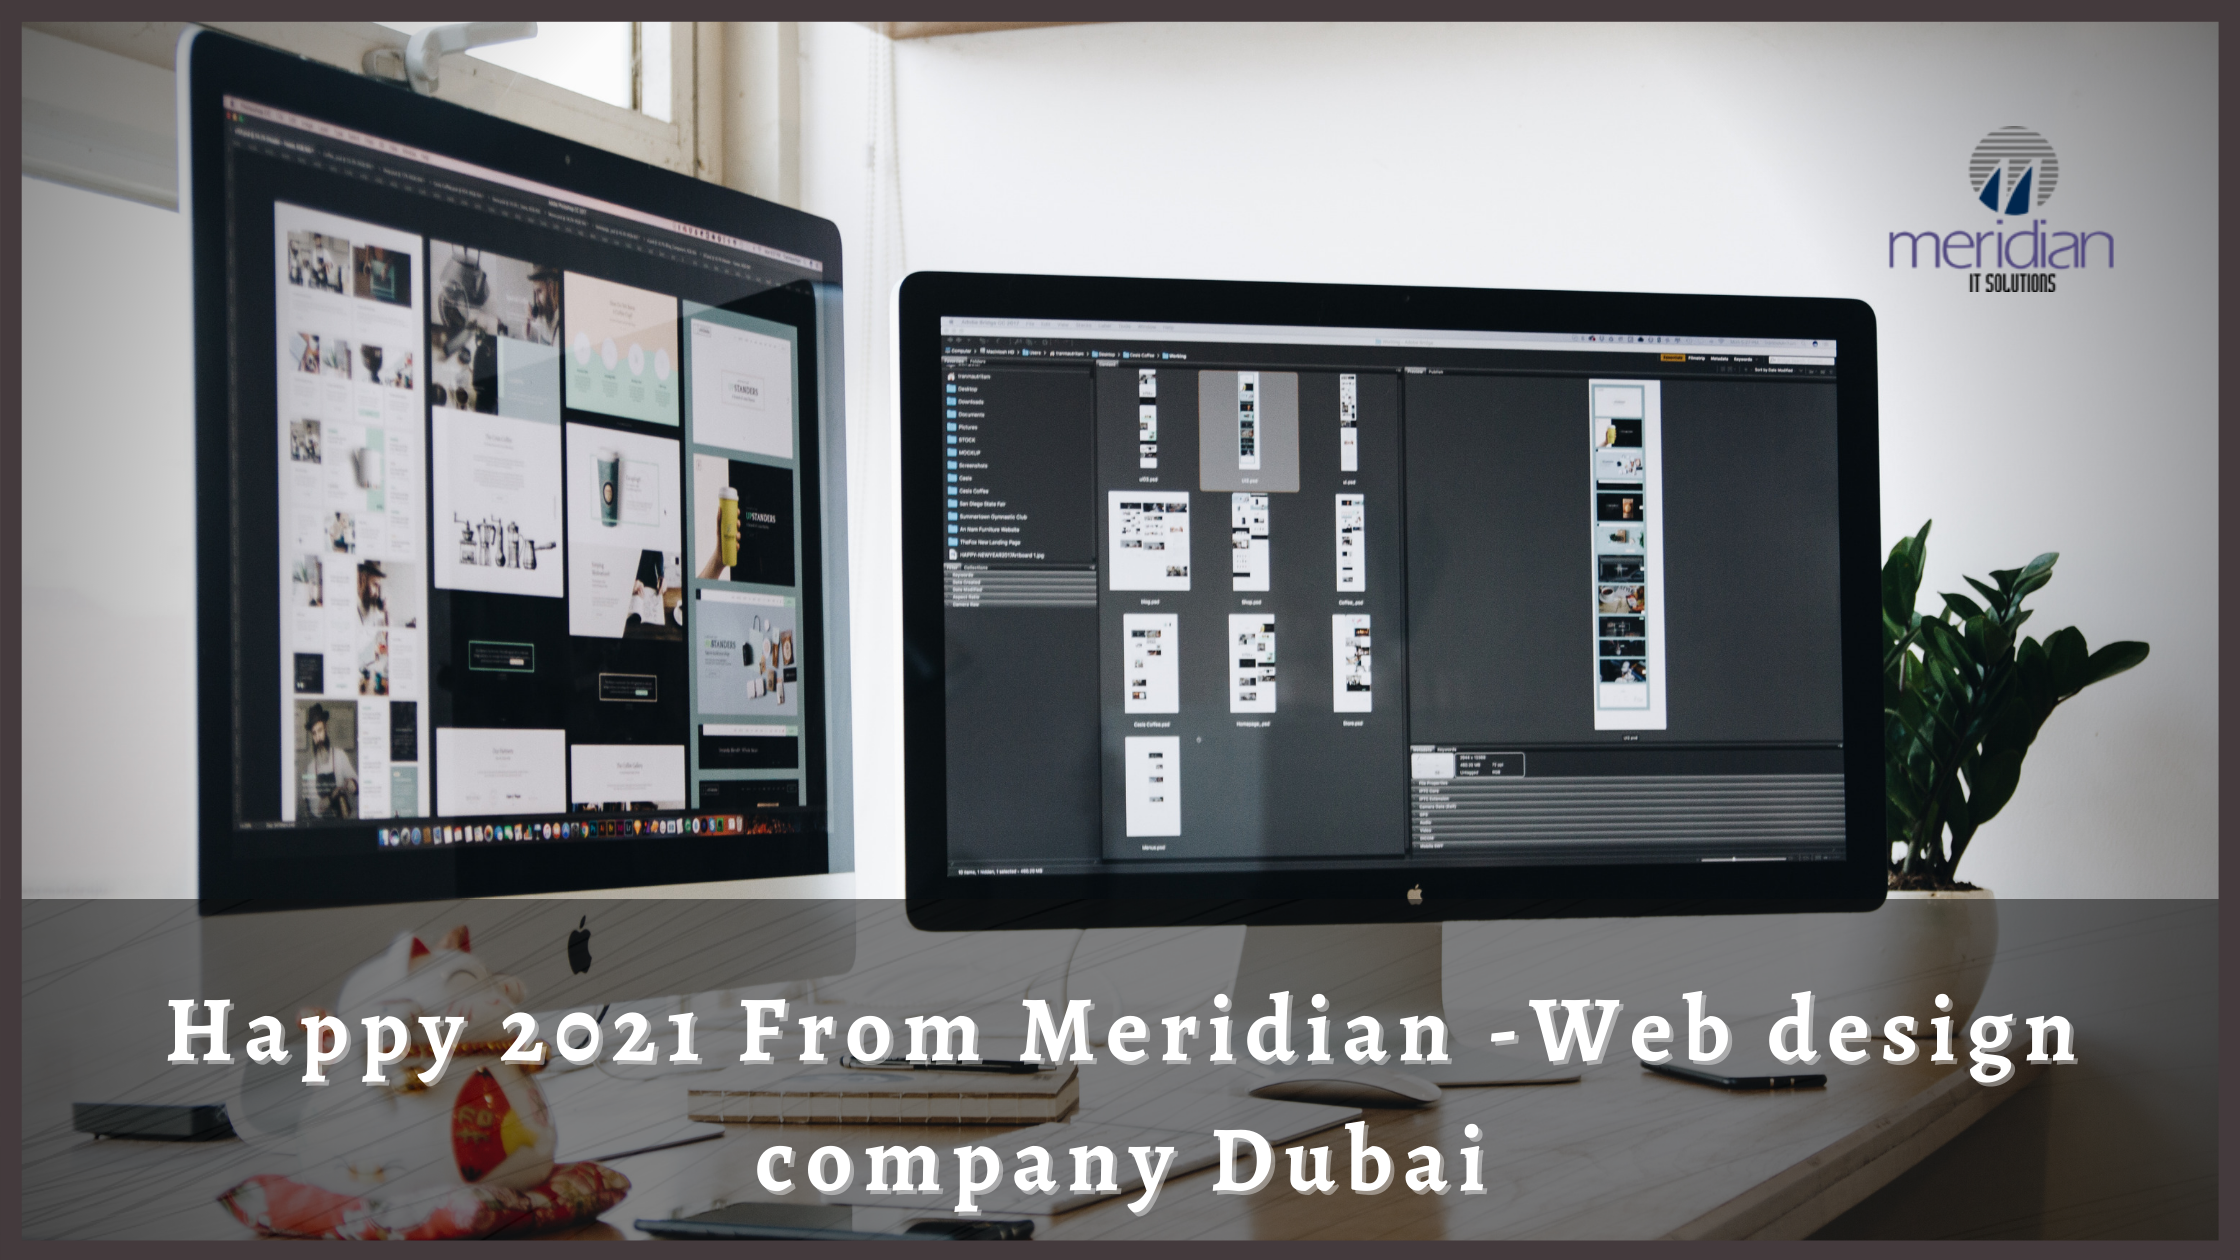 Happy 2021 From Meridian -Web design company Dubai